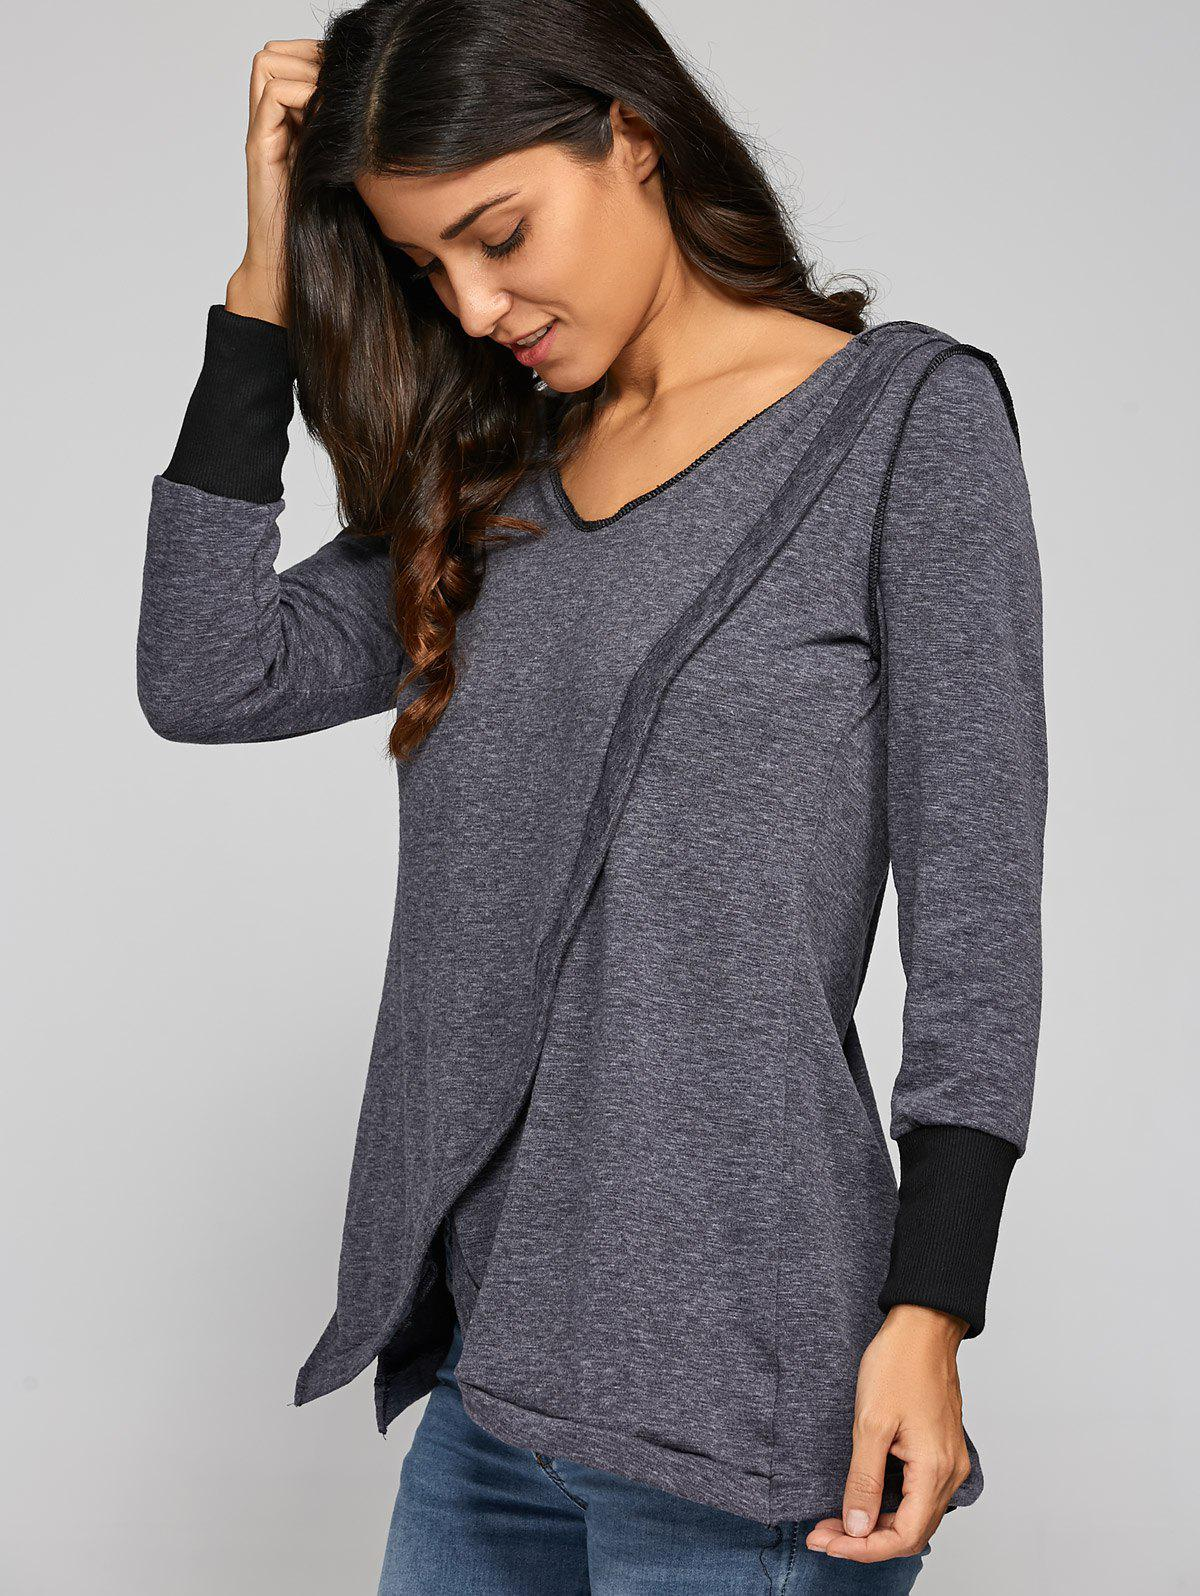 Back Cross Hooded T-Shirt - DEEP GRAY XL